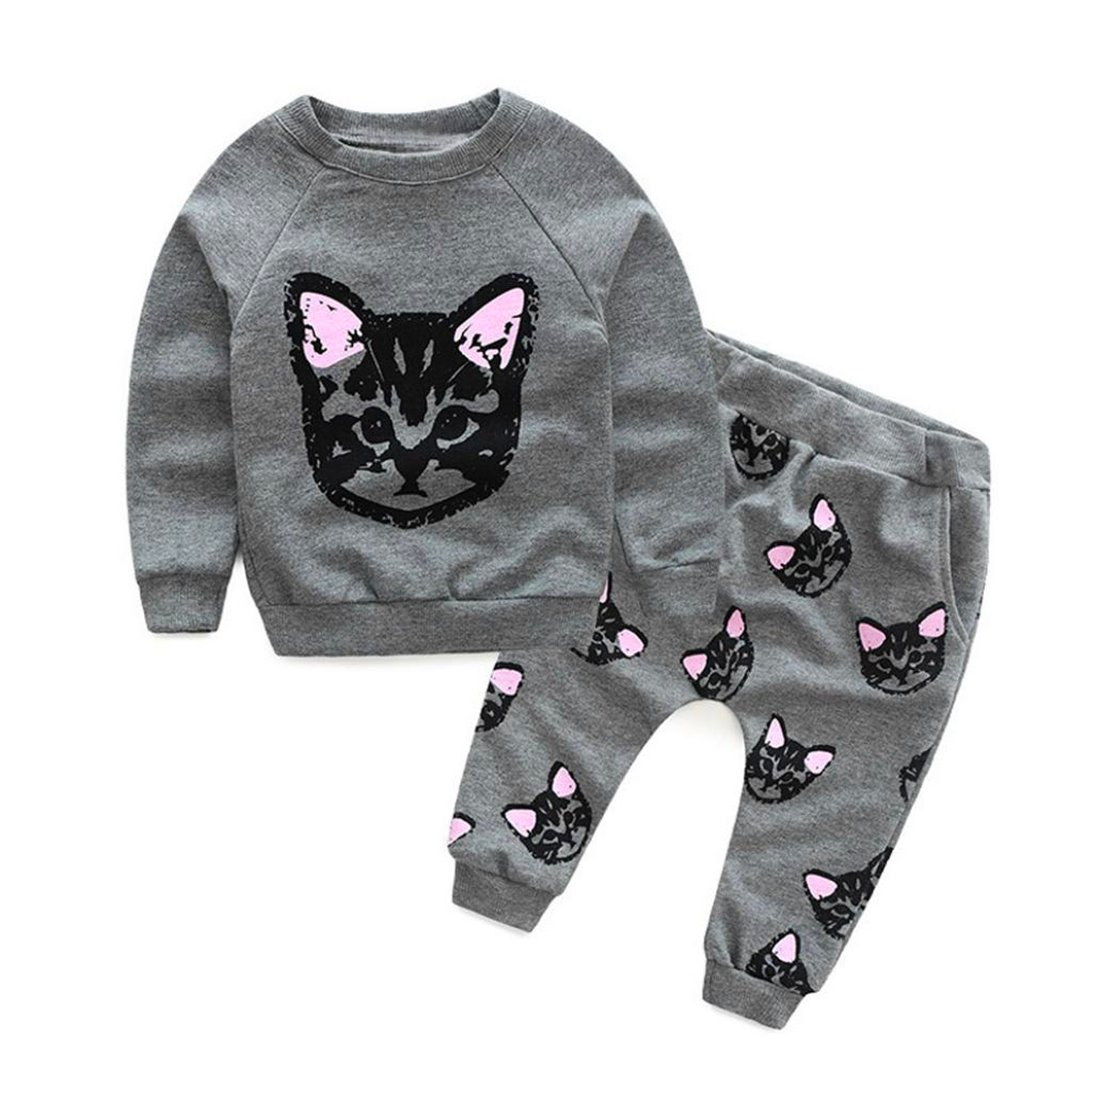 HANYI Baby Kids Set Cats Print Tracksuit +Pants Outfits Set (6T, gray)